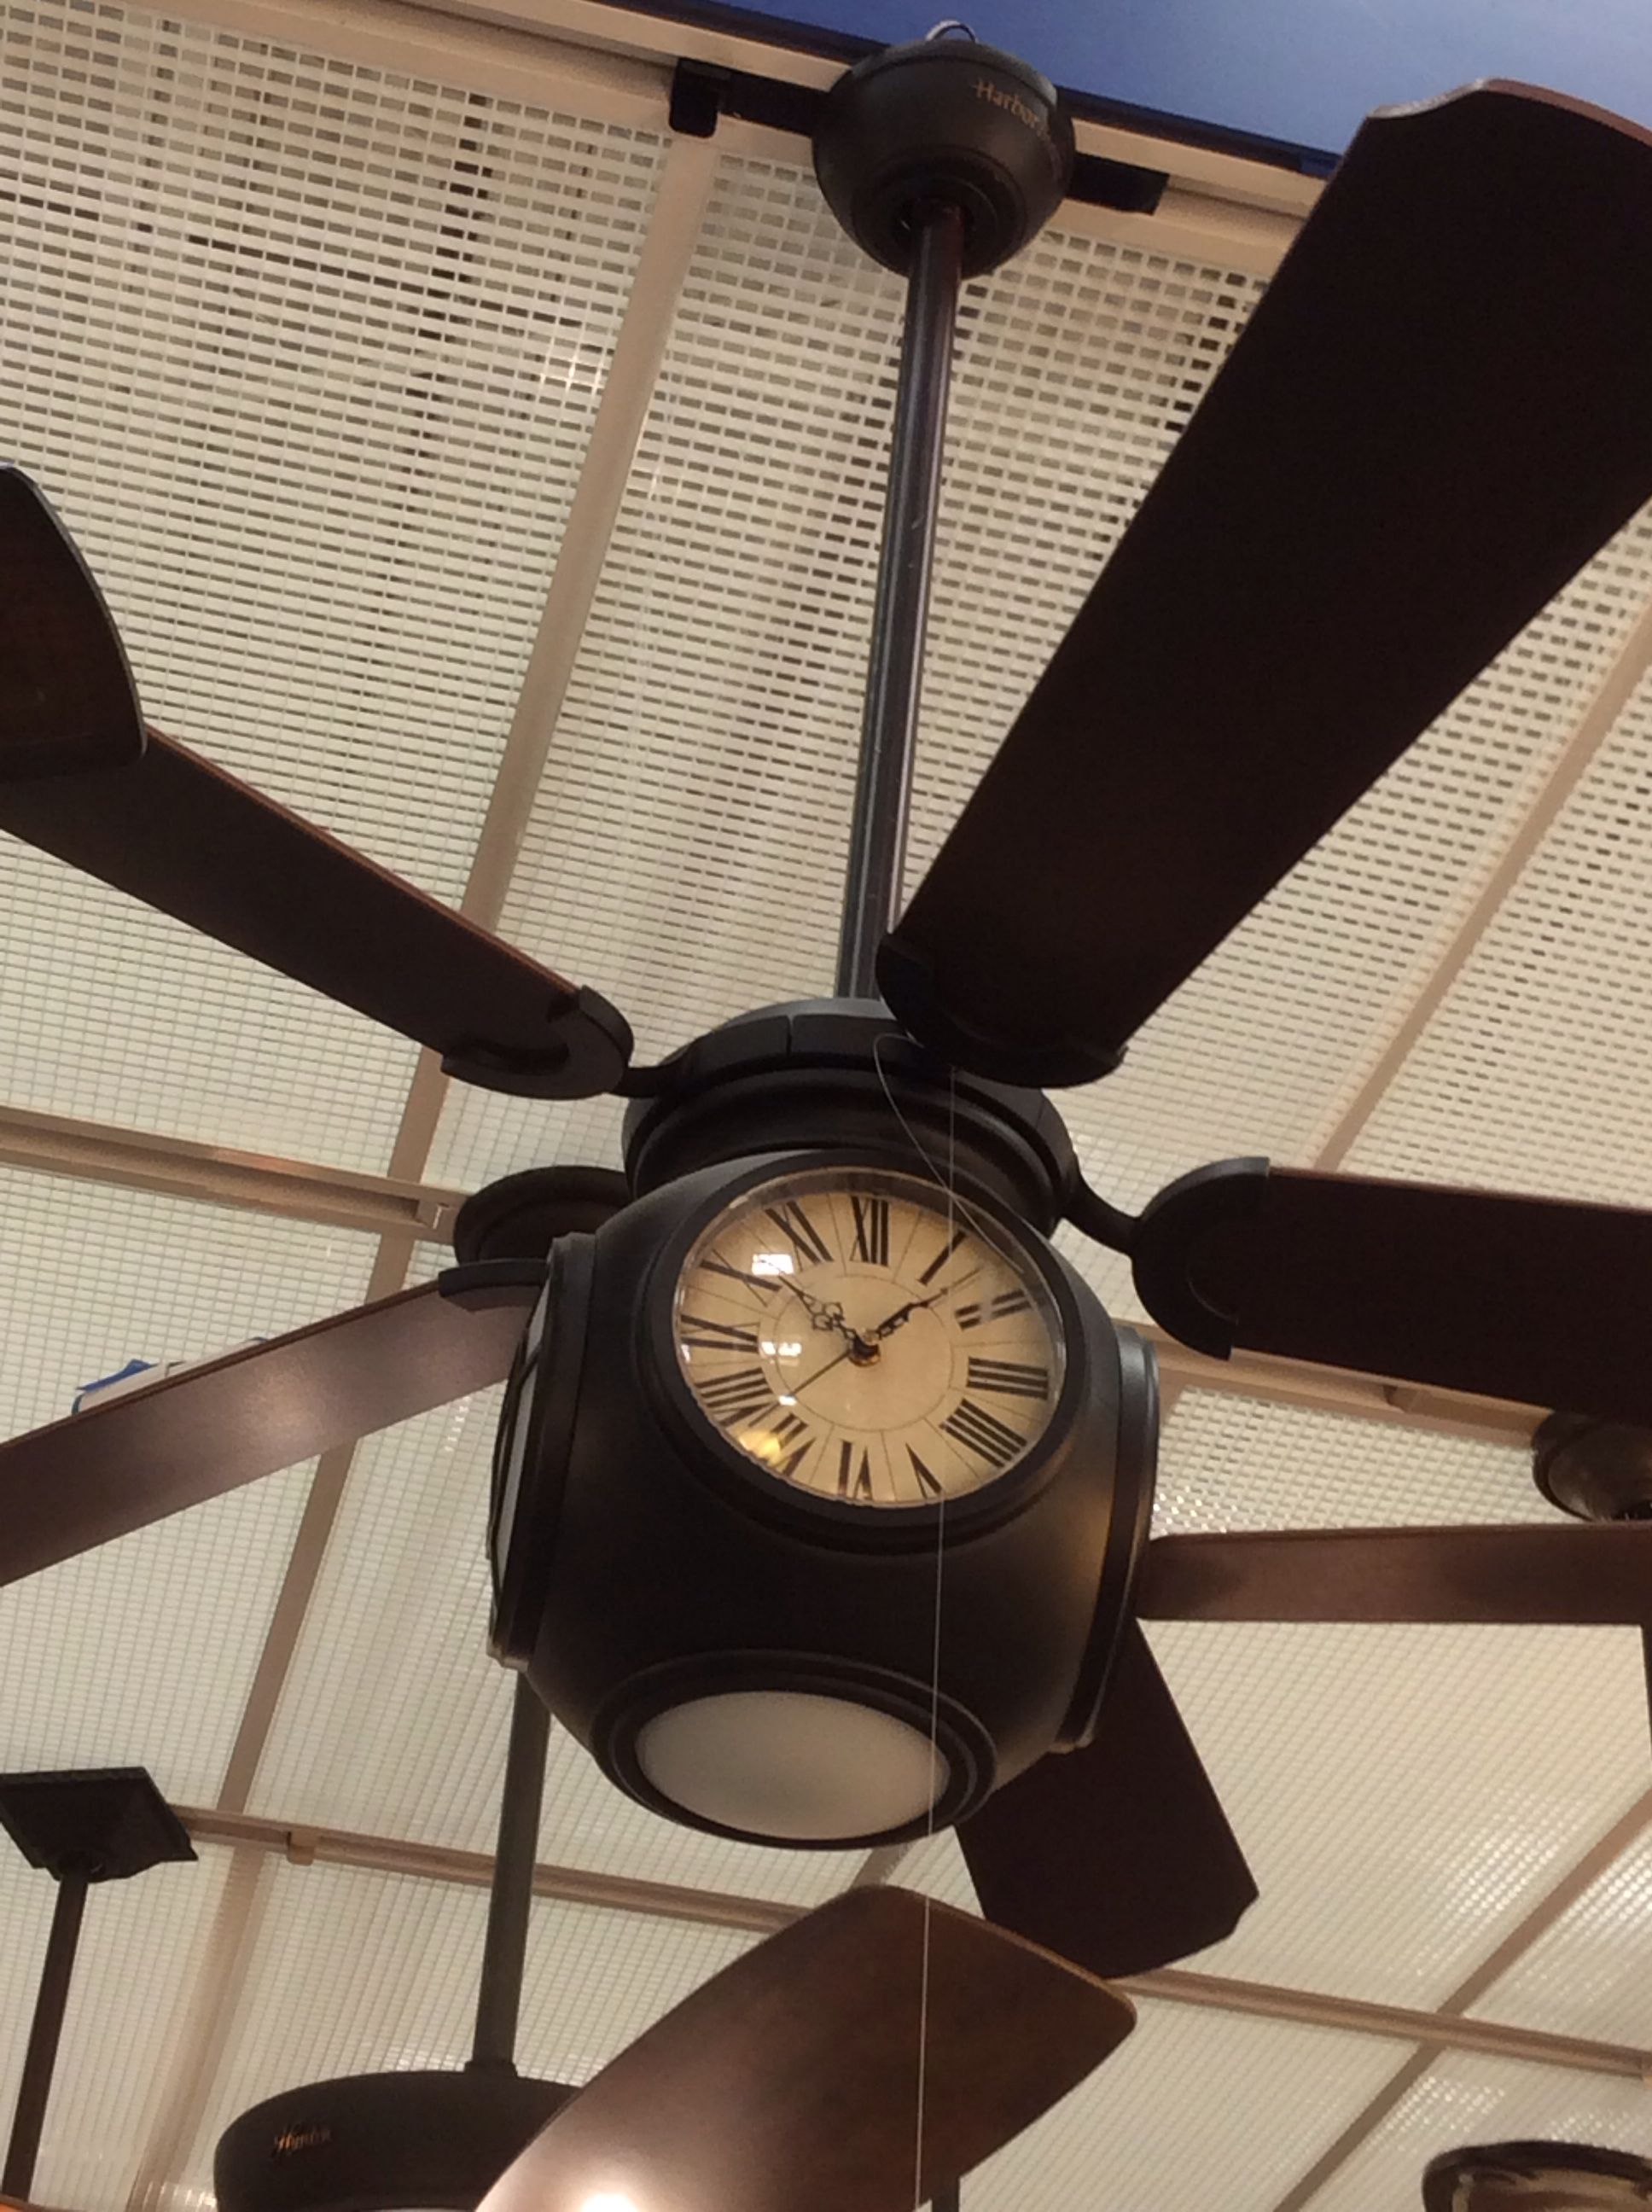 Steal Ceiling Fan In Flat White Finish W Flat White Blades By